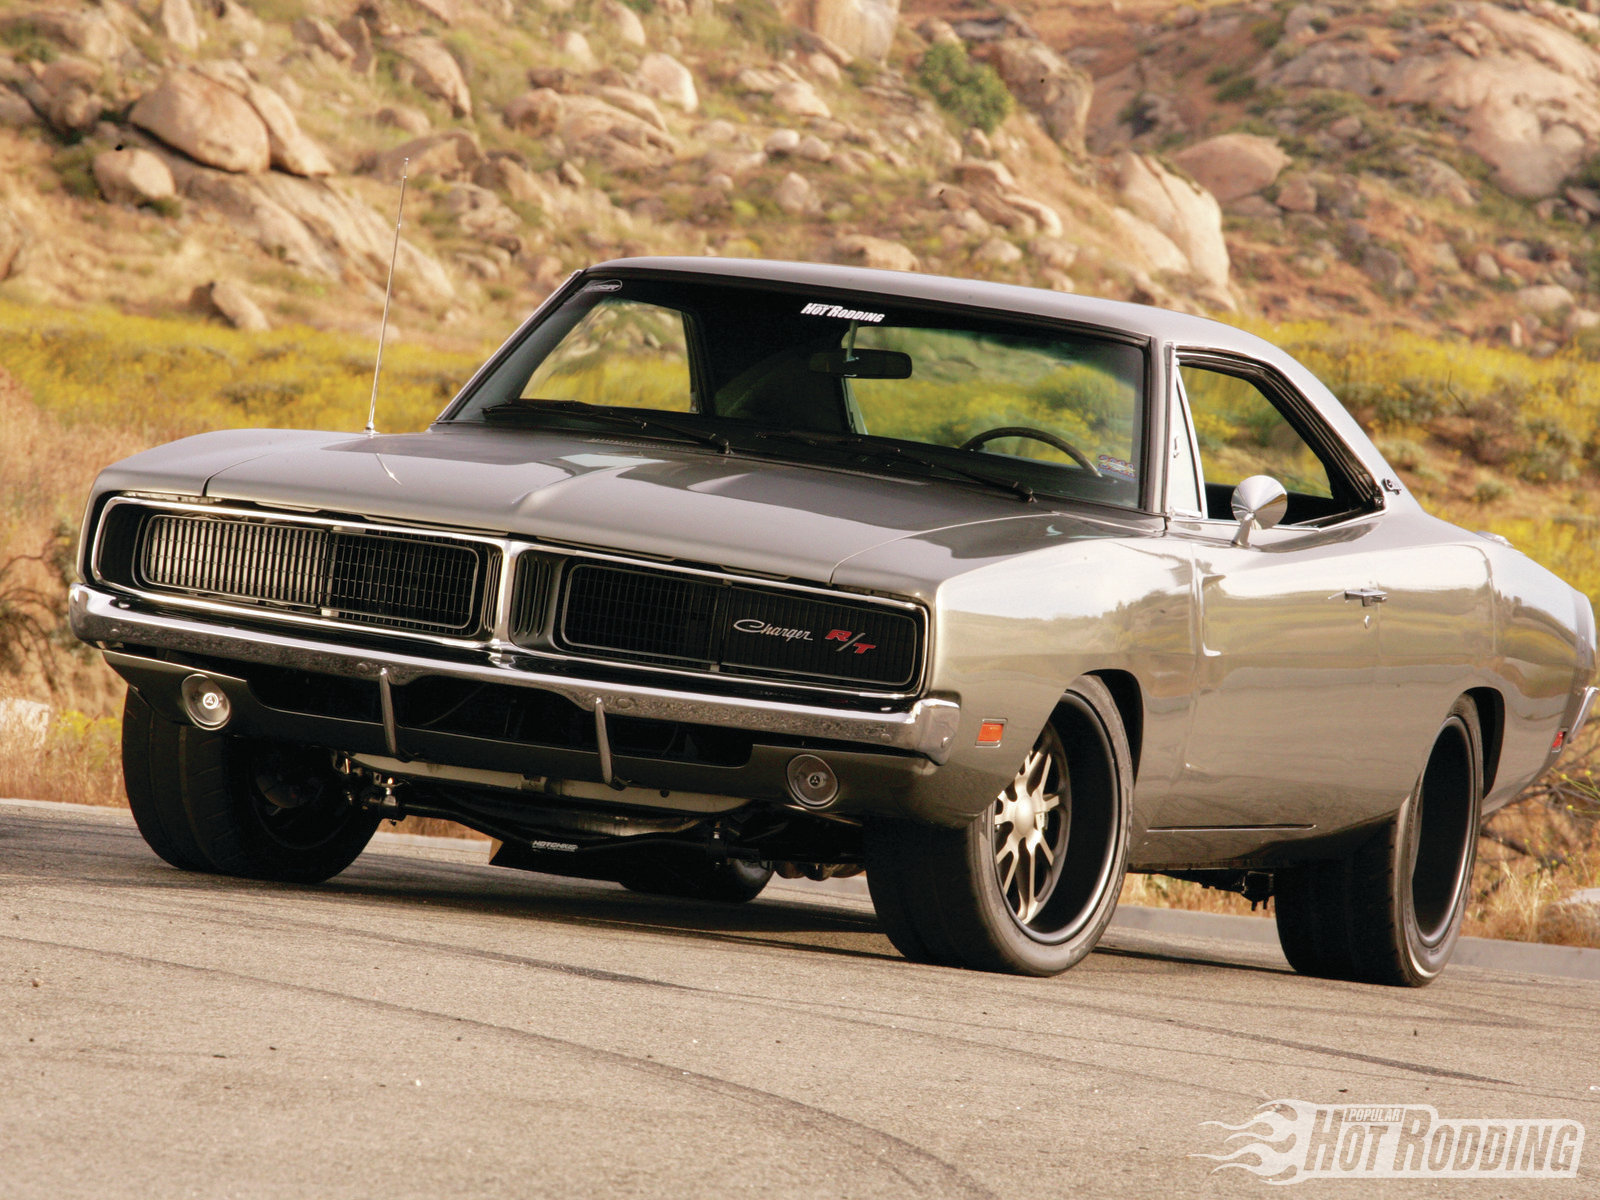 Vehicles 1969 dodge charger dodge hot rod muscle car classic car wallpaper